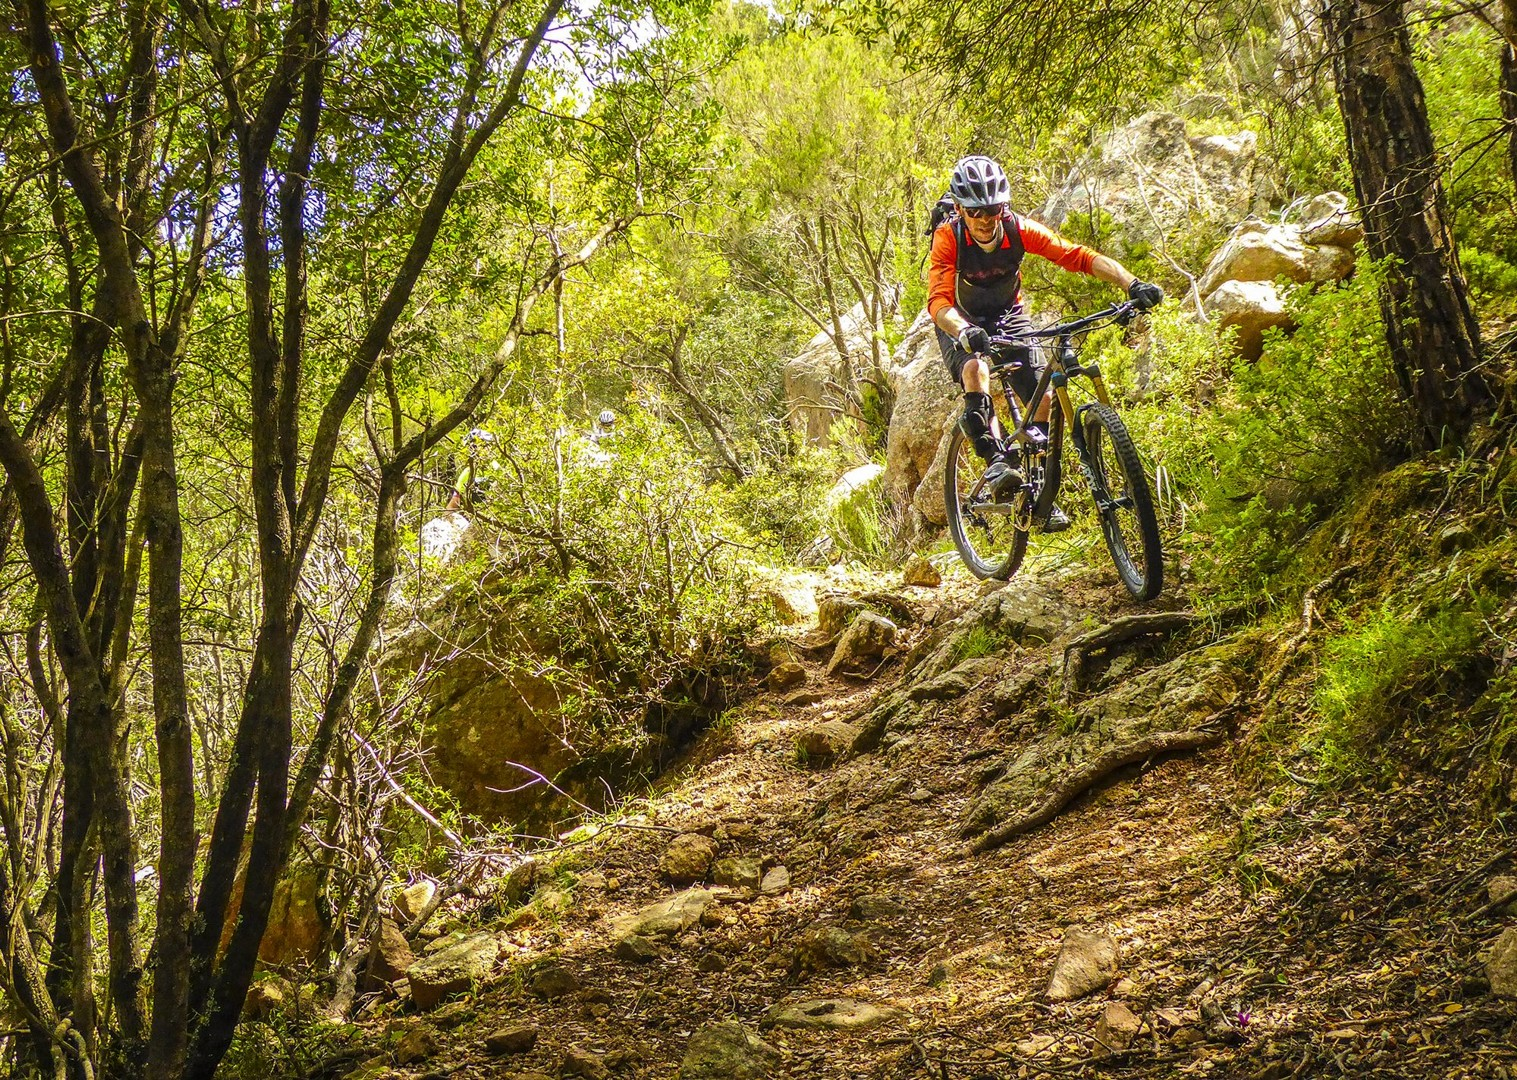 dirt-track-technical-mountain-biking-tour-sardinia-italy-self-guided - Italy - Sardinia - Coast to Coast - Self-Guided Mountain Bike Holiday - Mountain Biking